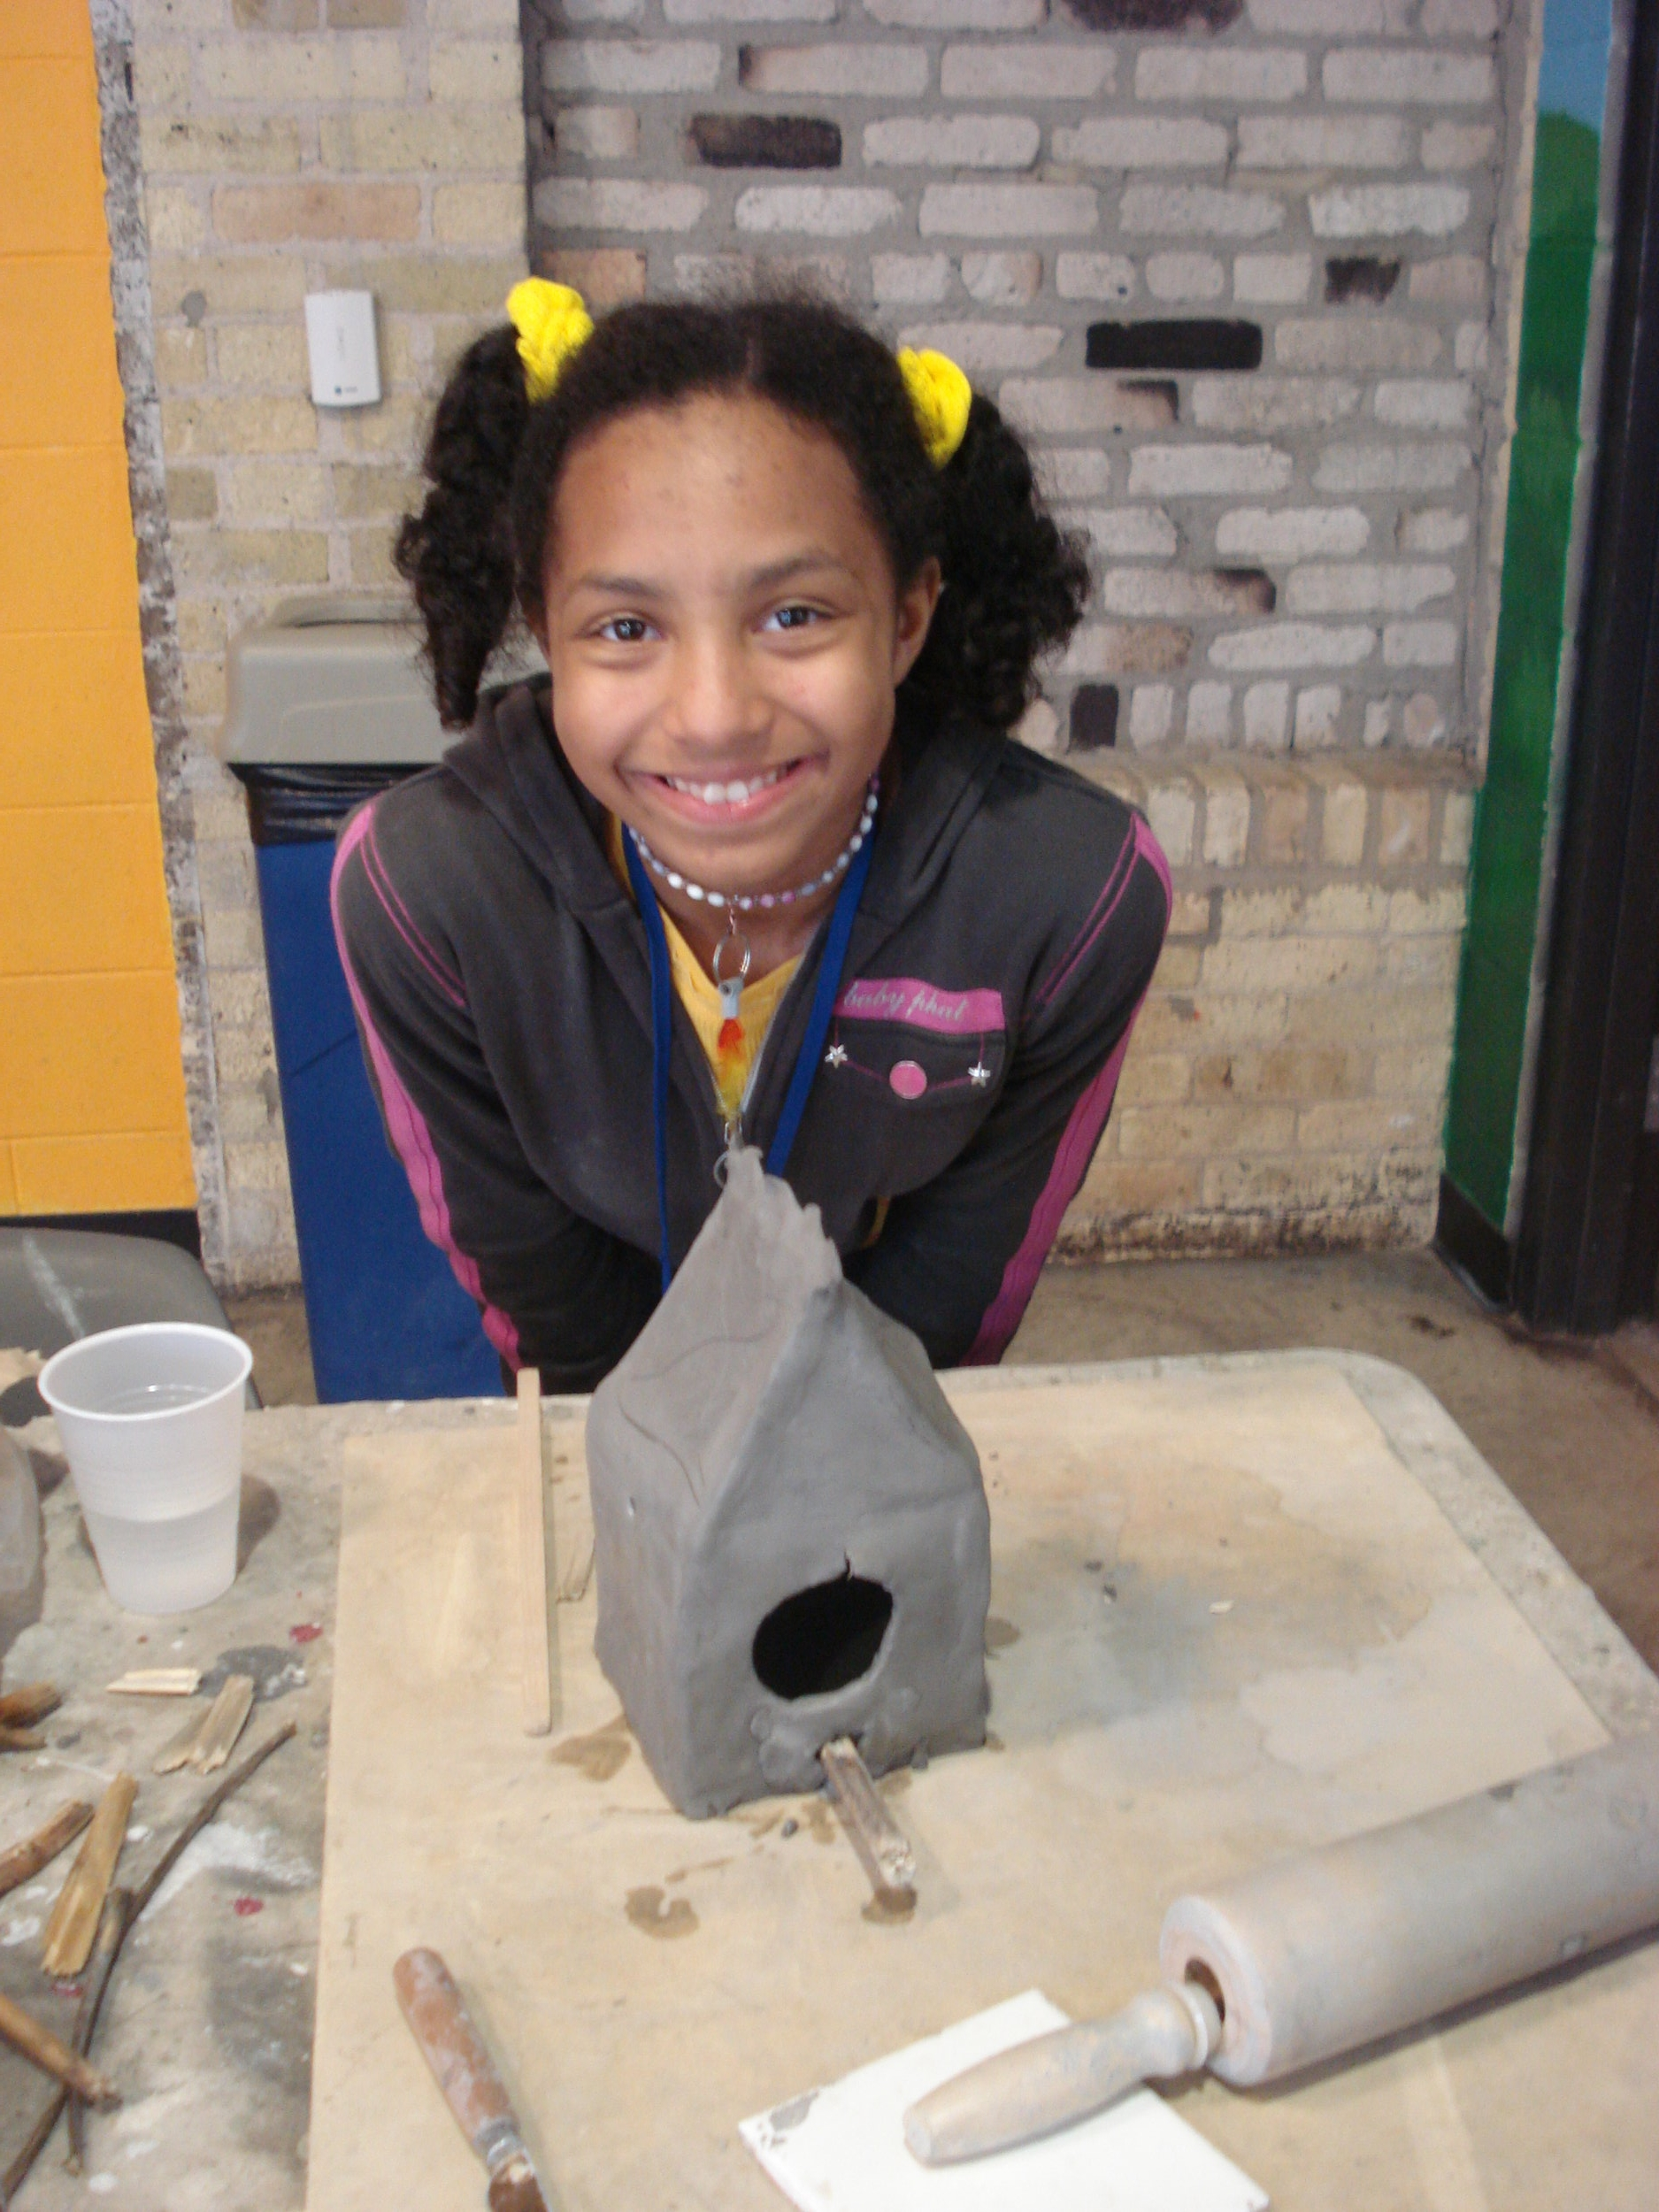 Students at Goodman Community Center's after school programs learned about birds and art through a partnership with Madison Audubon Society.